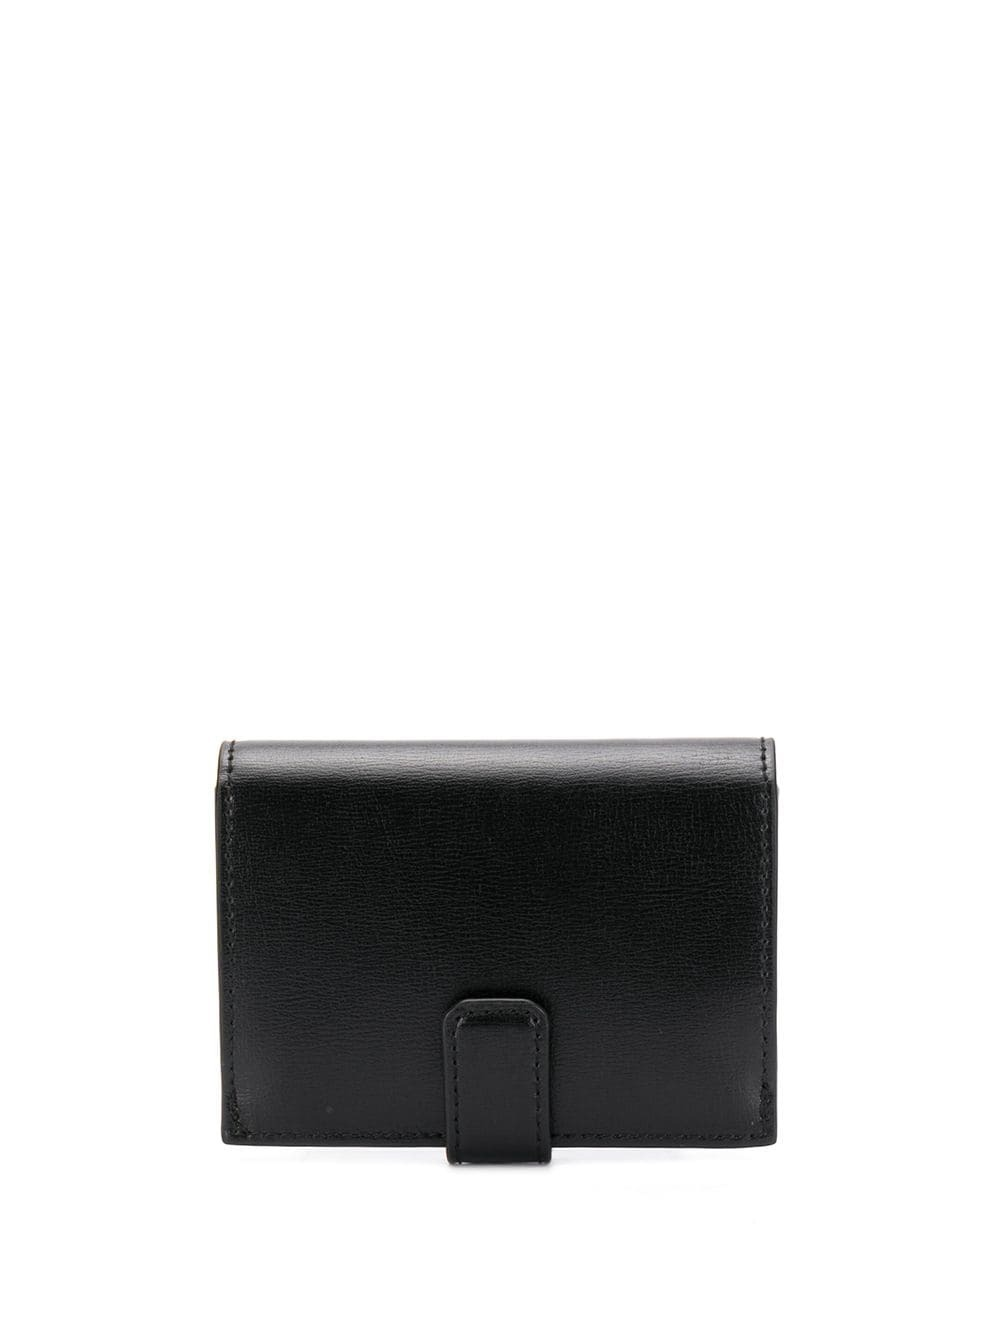 shop ganni wallets & card holders